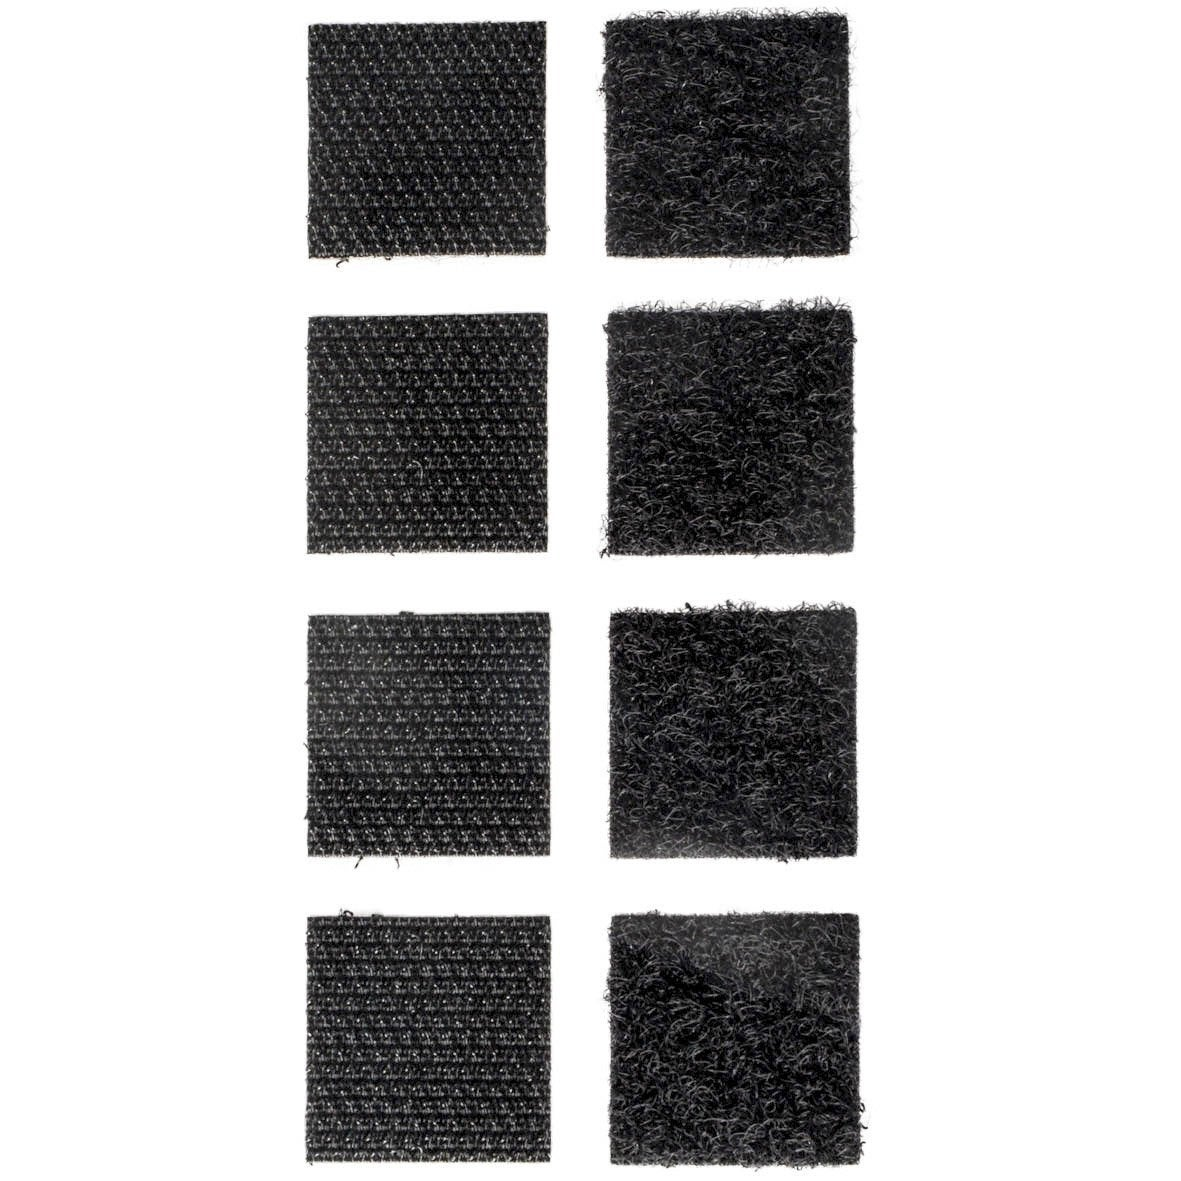 velcro adhesif leroy merlin. Black Bedroom Furniture Sets. Home Design Ideas